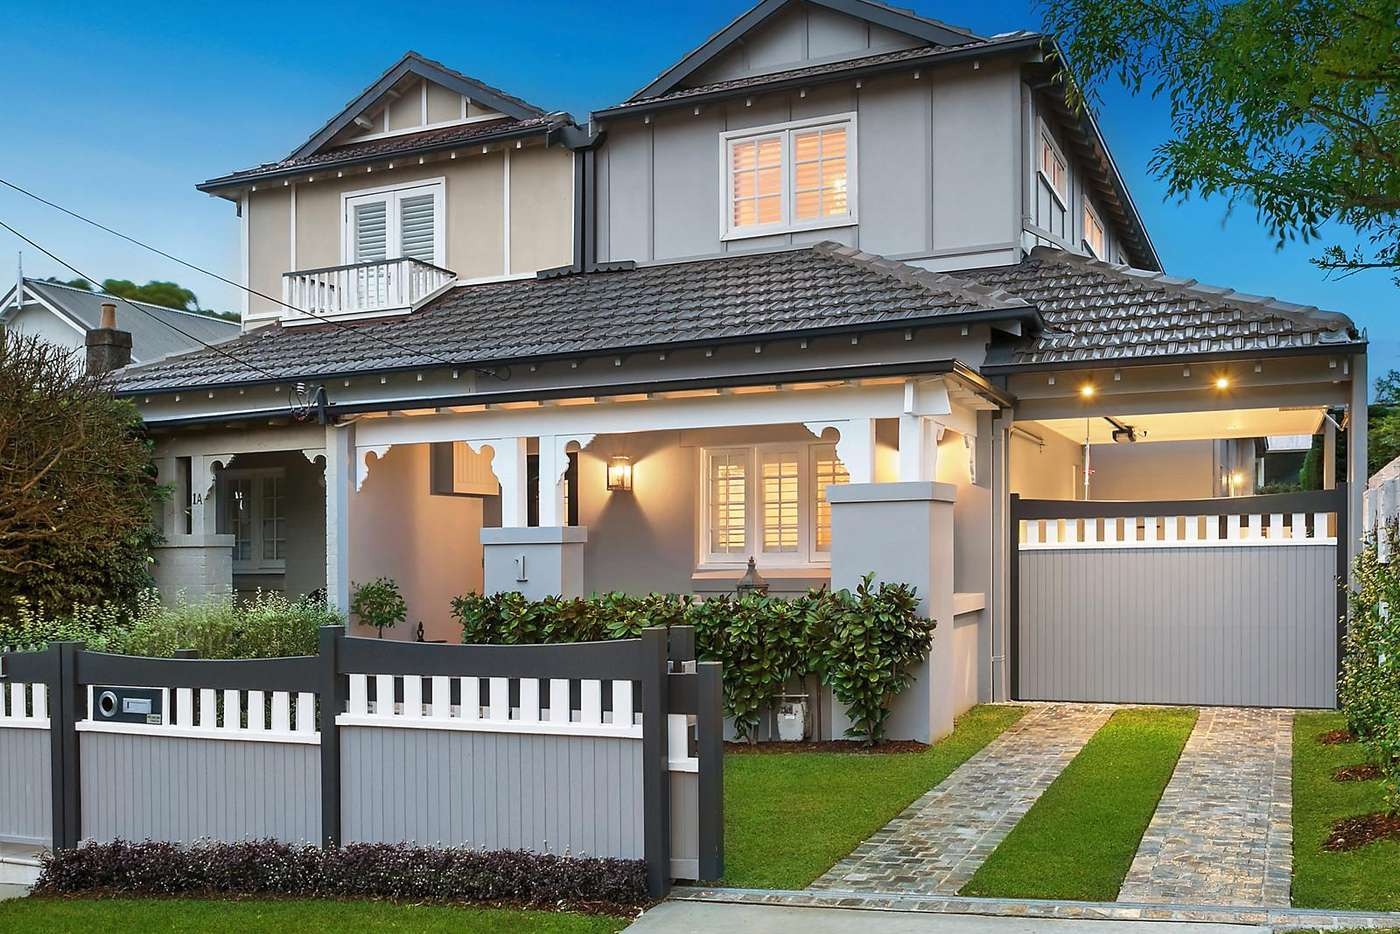 Main view of Homely house listing, 1 Rosebery Street, Mosman NSW 2088